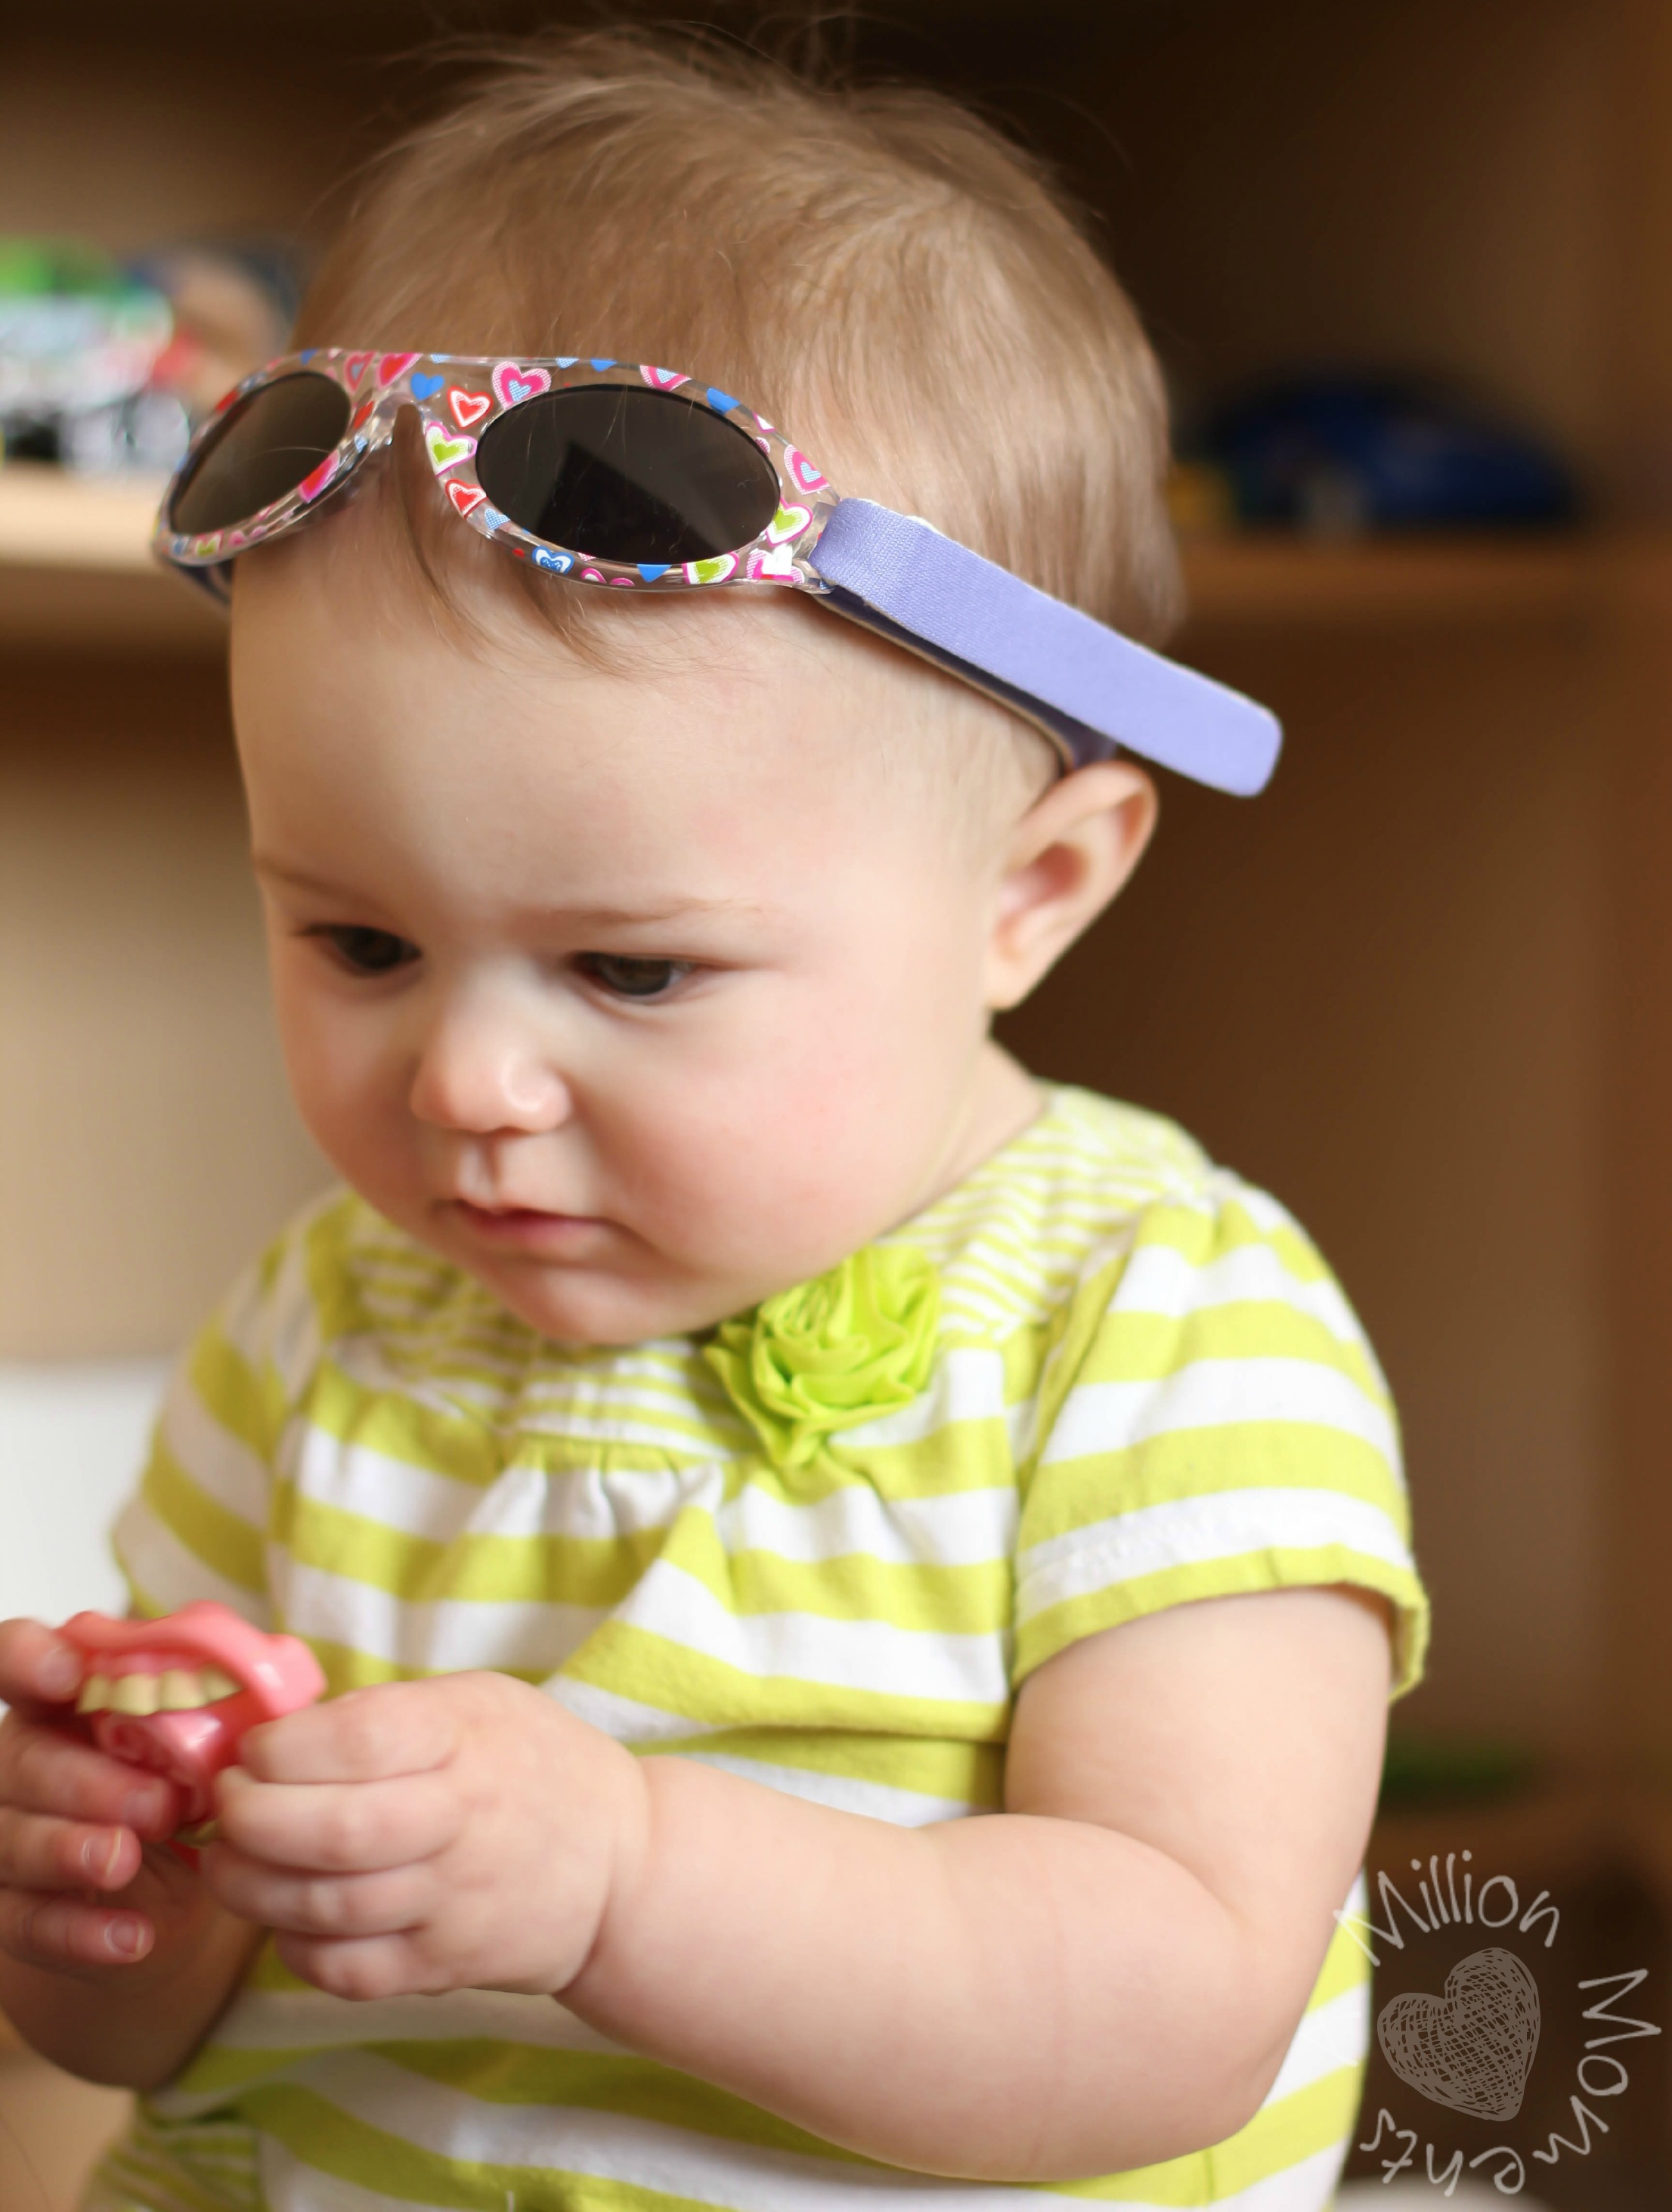 314ad00162 Sunglasses that have an adjustable strap are ideal for babies and younger  children (0-24 months). Make sure the strap is made of soft